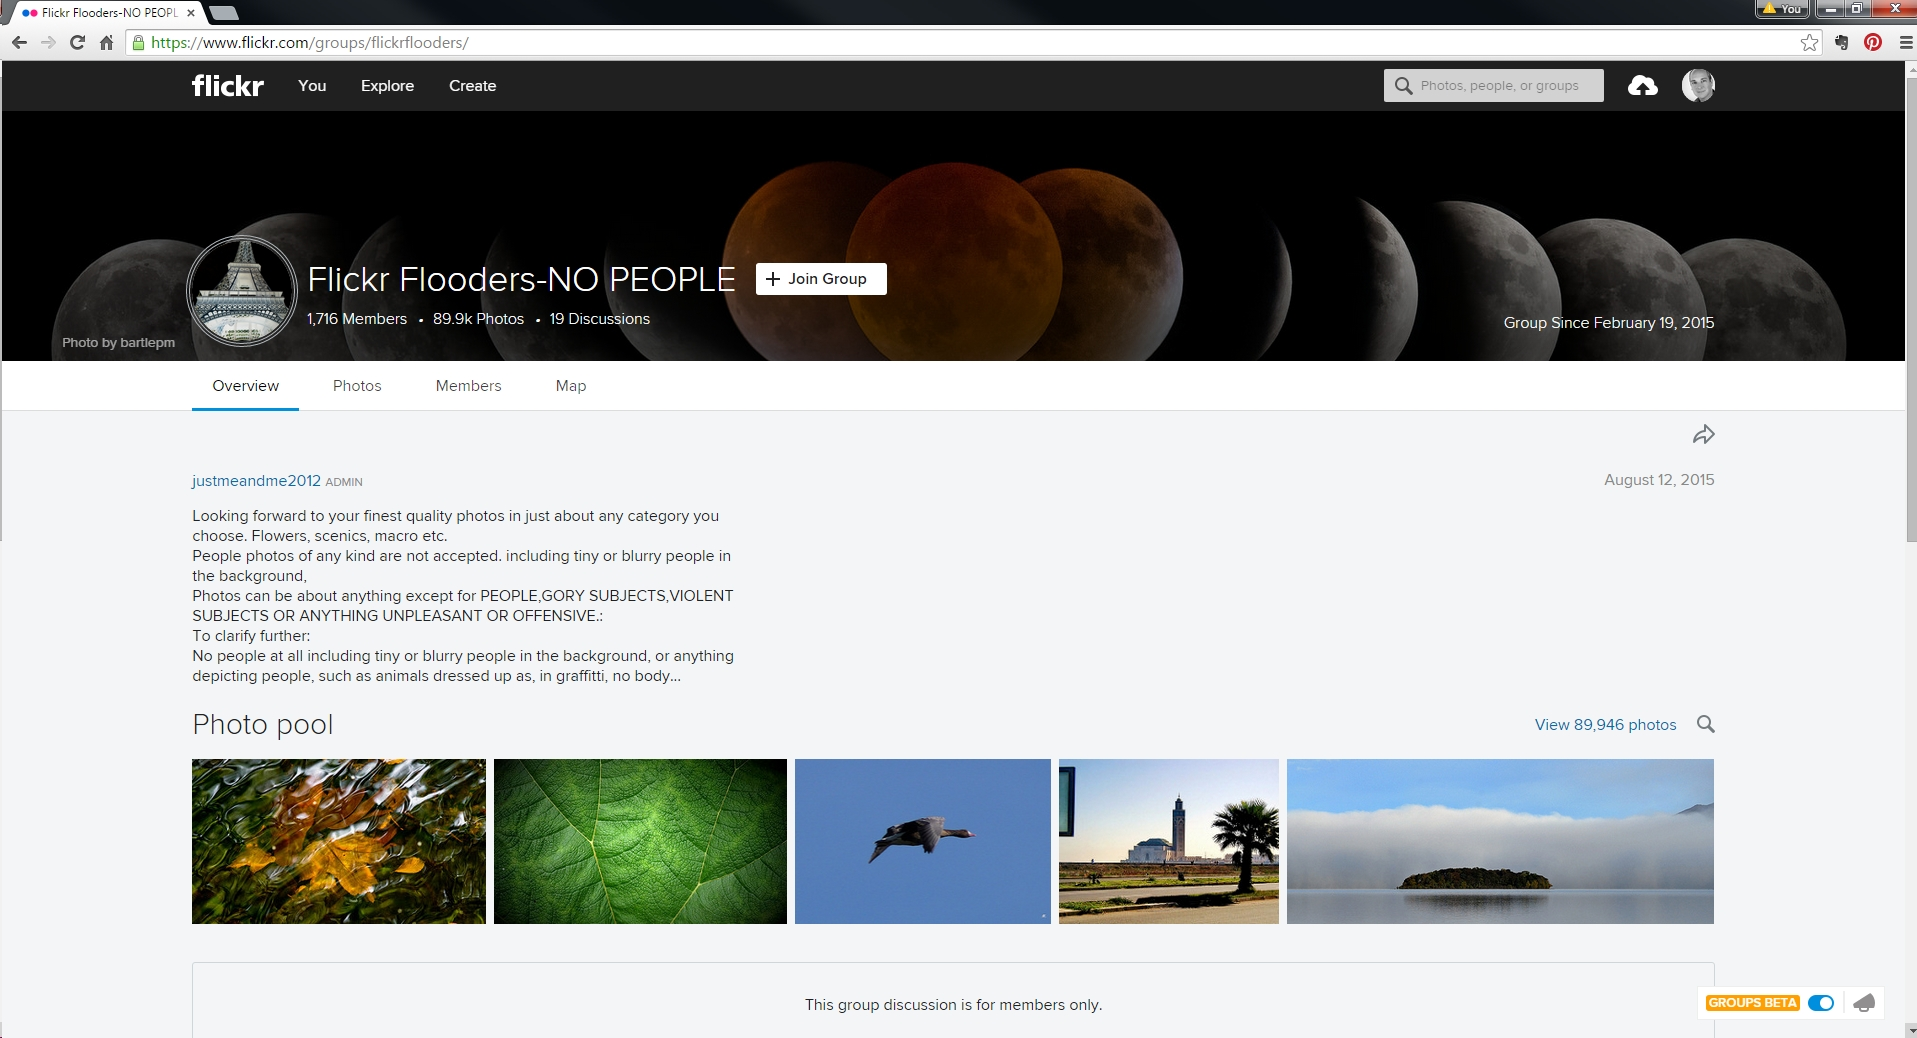 Flickr Flooder's Cover featuring Timelapse Eclipse